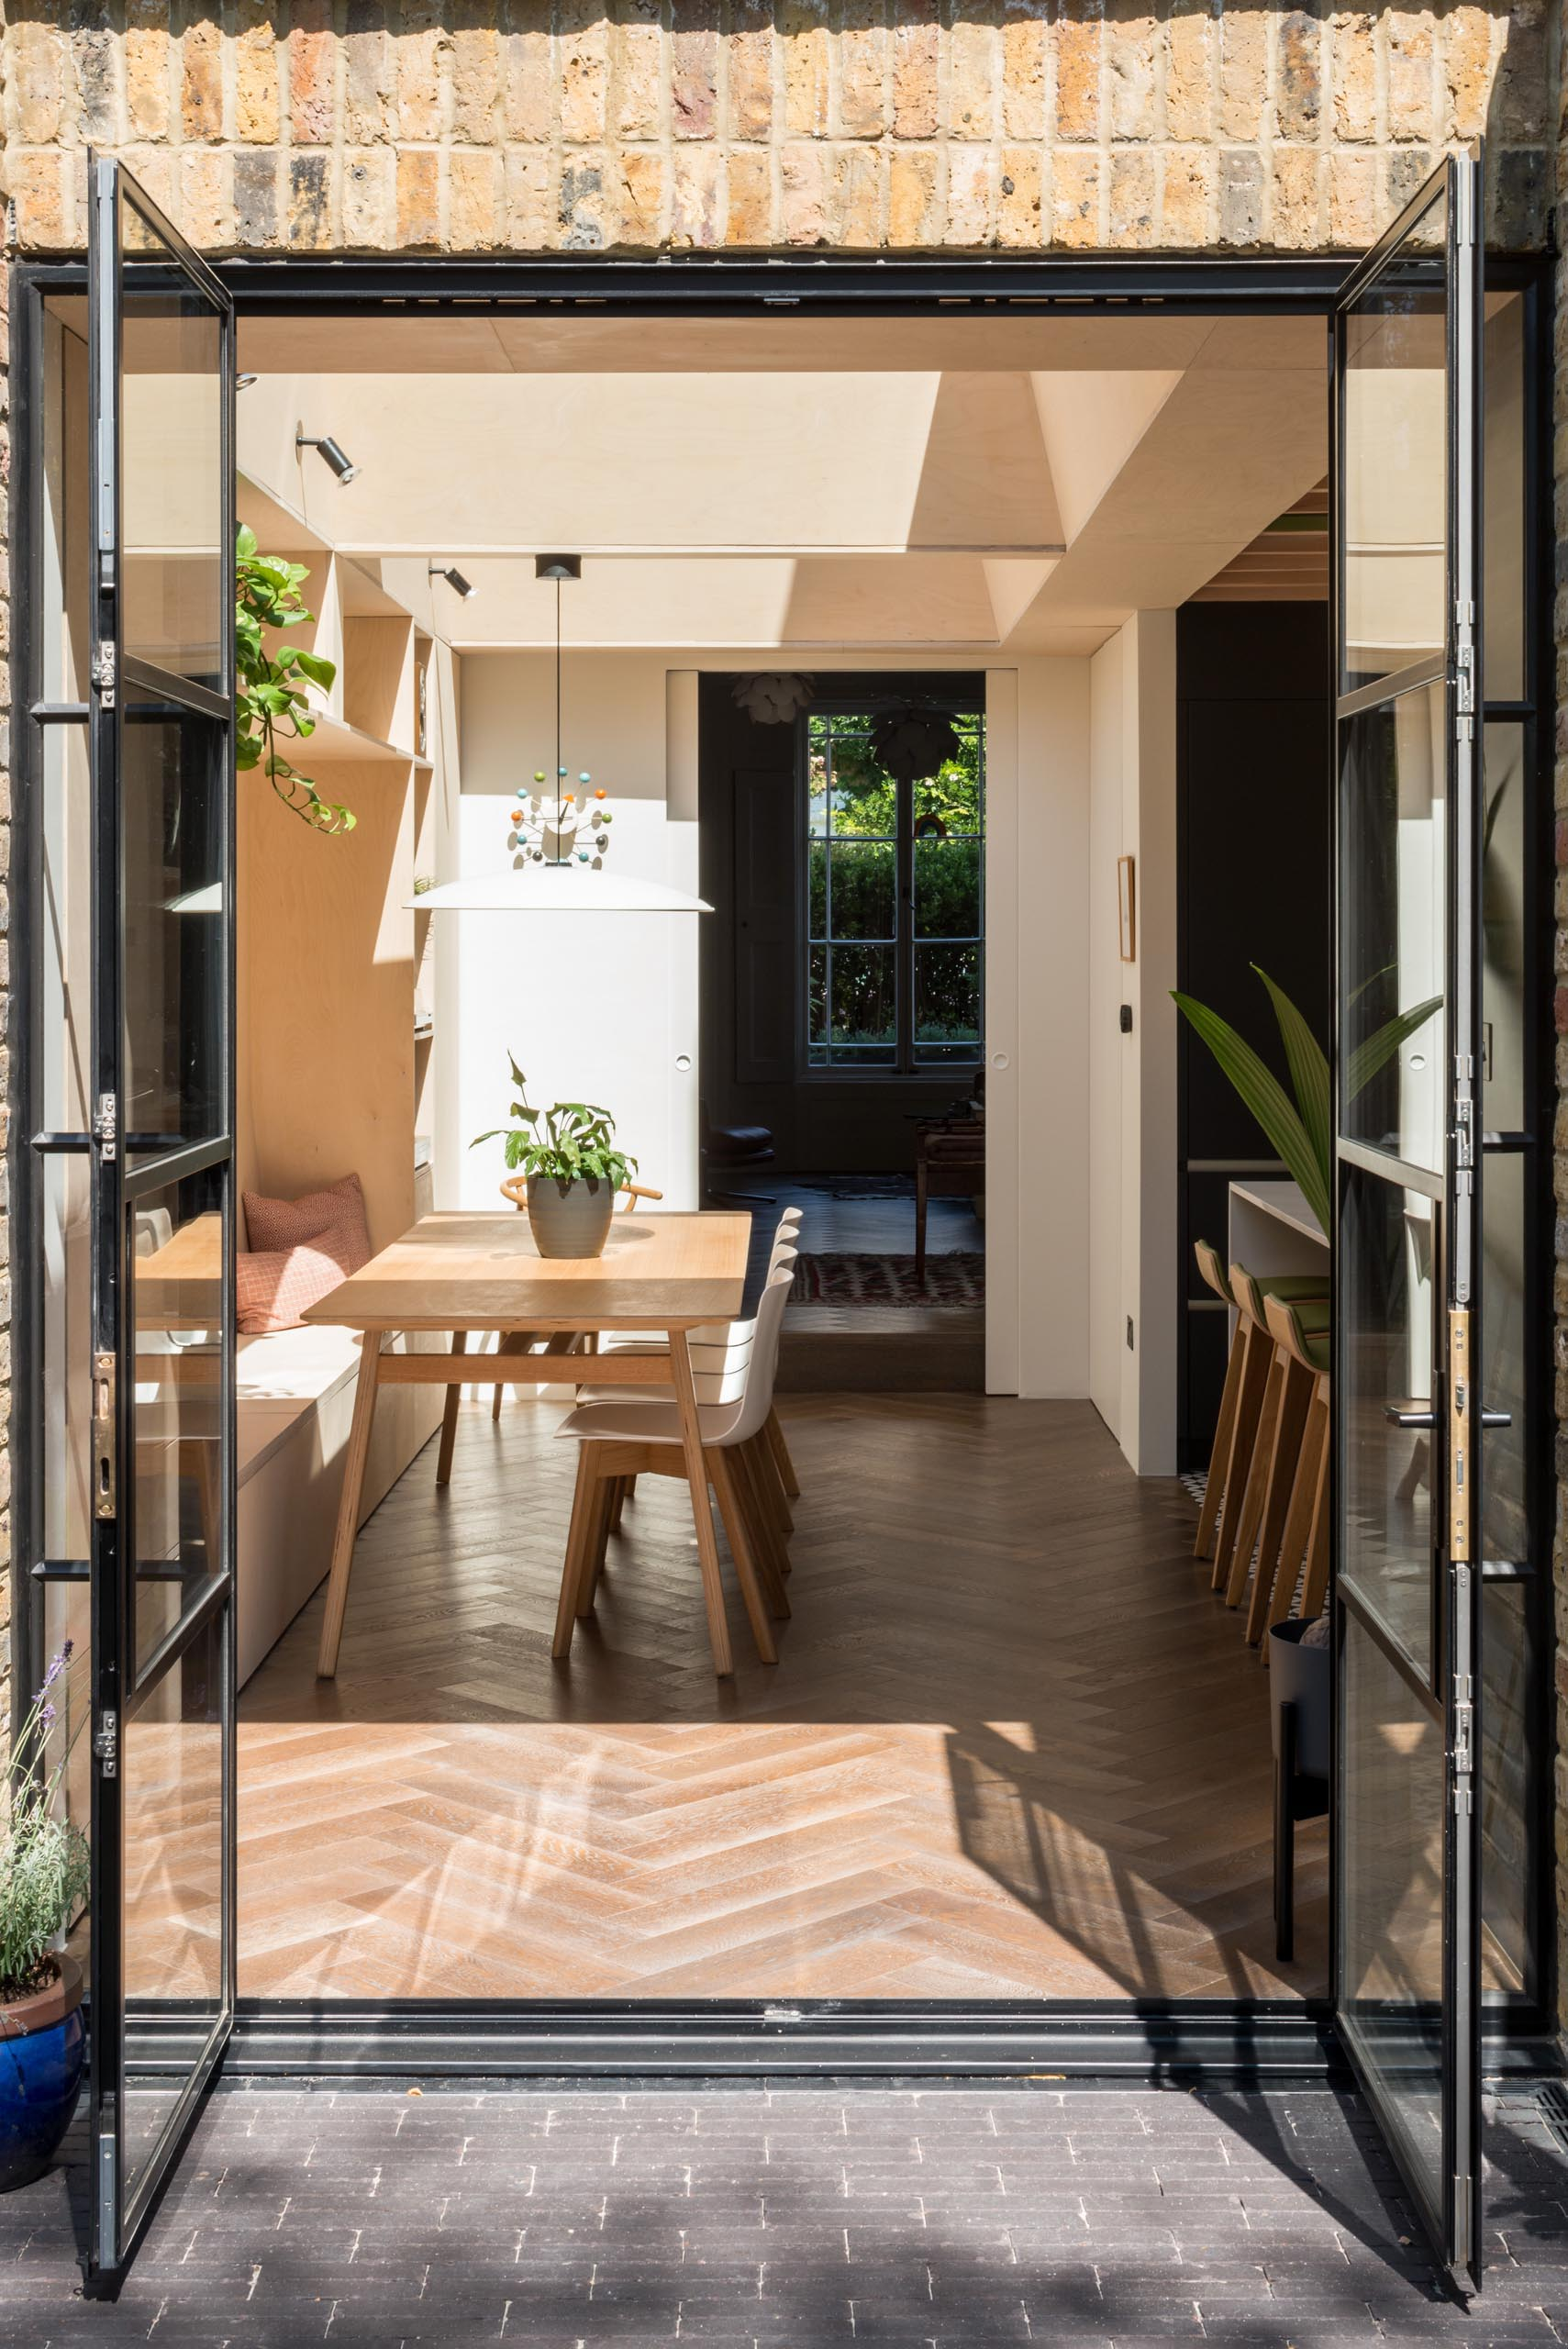 Black framed glass doors (Crittall doors) open to the garden.